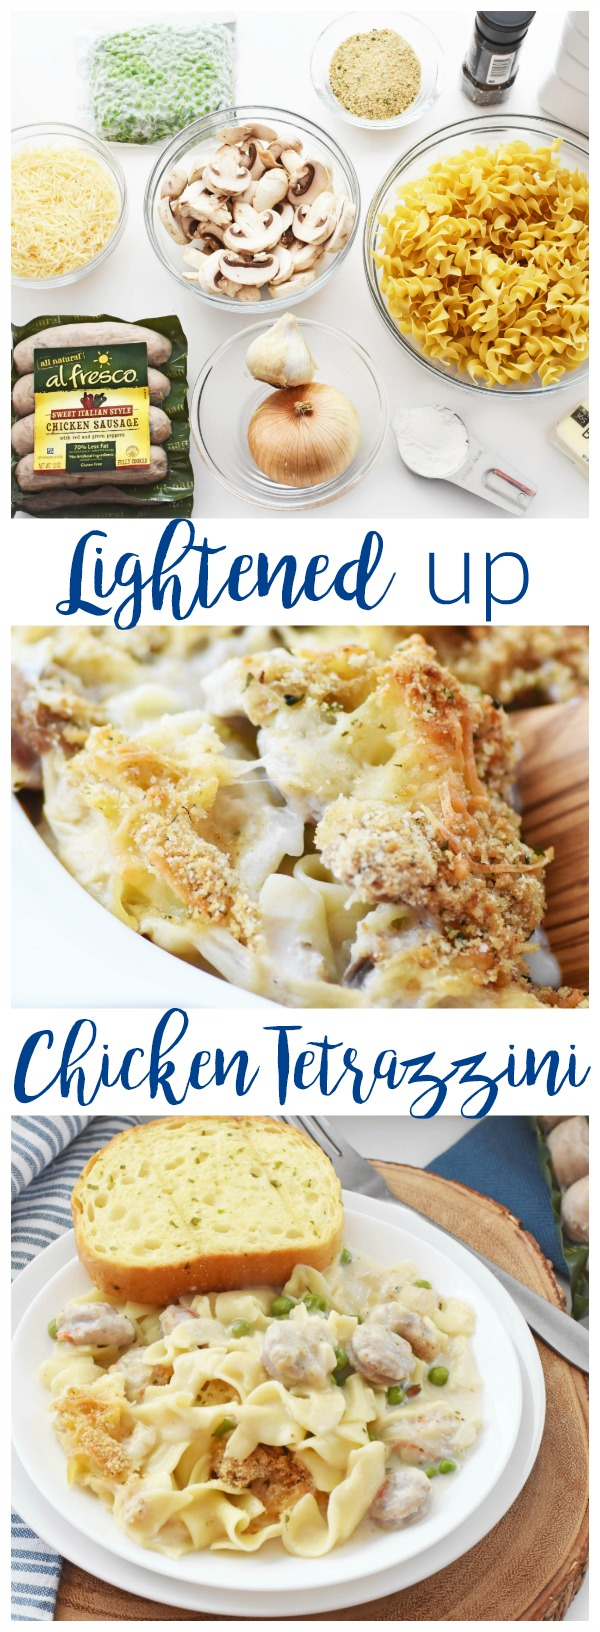 Easy Chicken Tetrazzini Recipe-Made with Egg Noodles & Sweet Italian Style al fresco Chicken Sausage. A lightened up version of a classic comfort food. This Chicken Tetrazzini features egg noodles, sweet Italian style chicken sausage, and a lighter cheese! This recipe contain no sherry